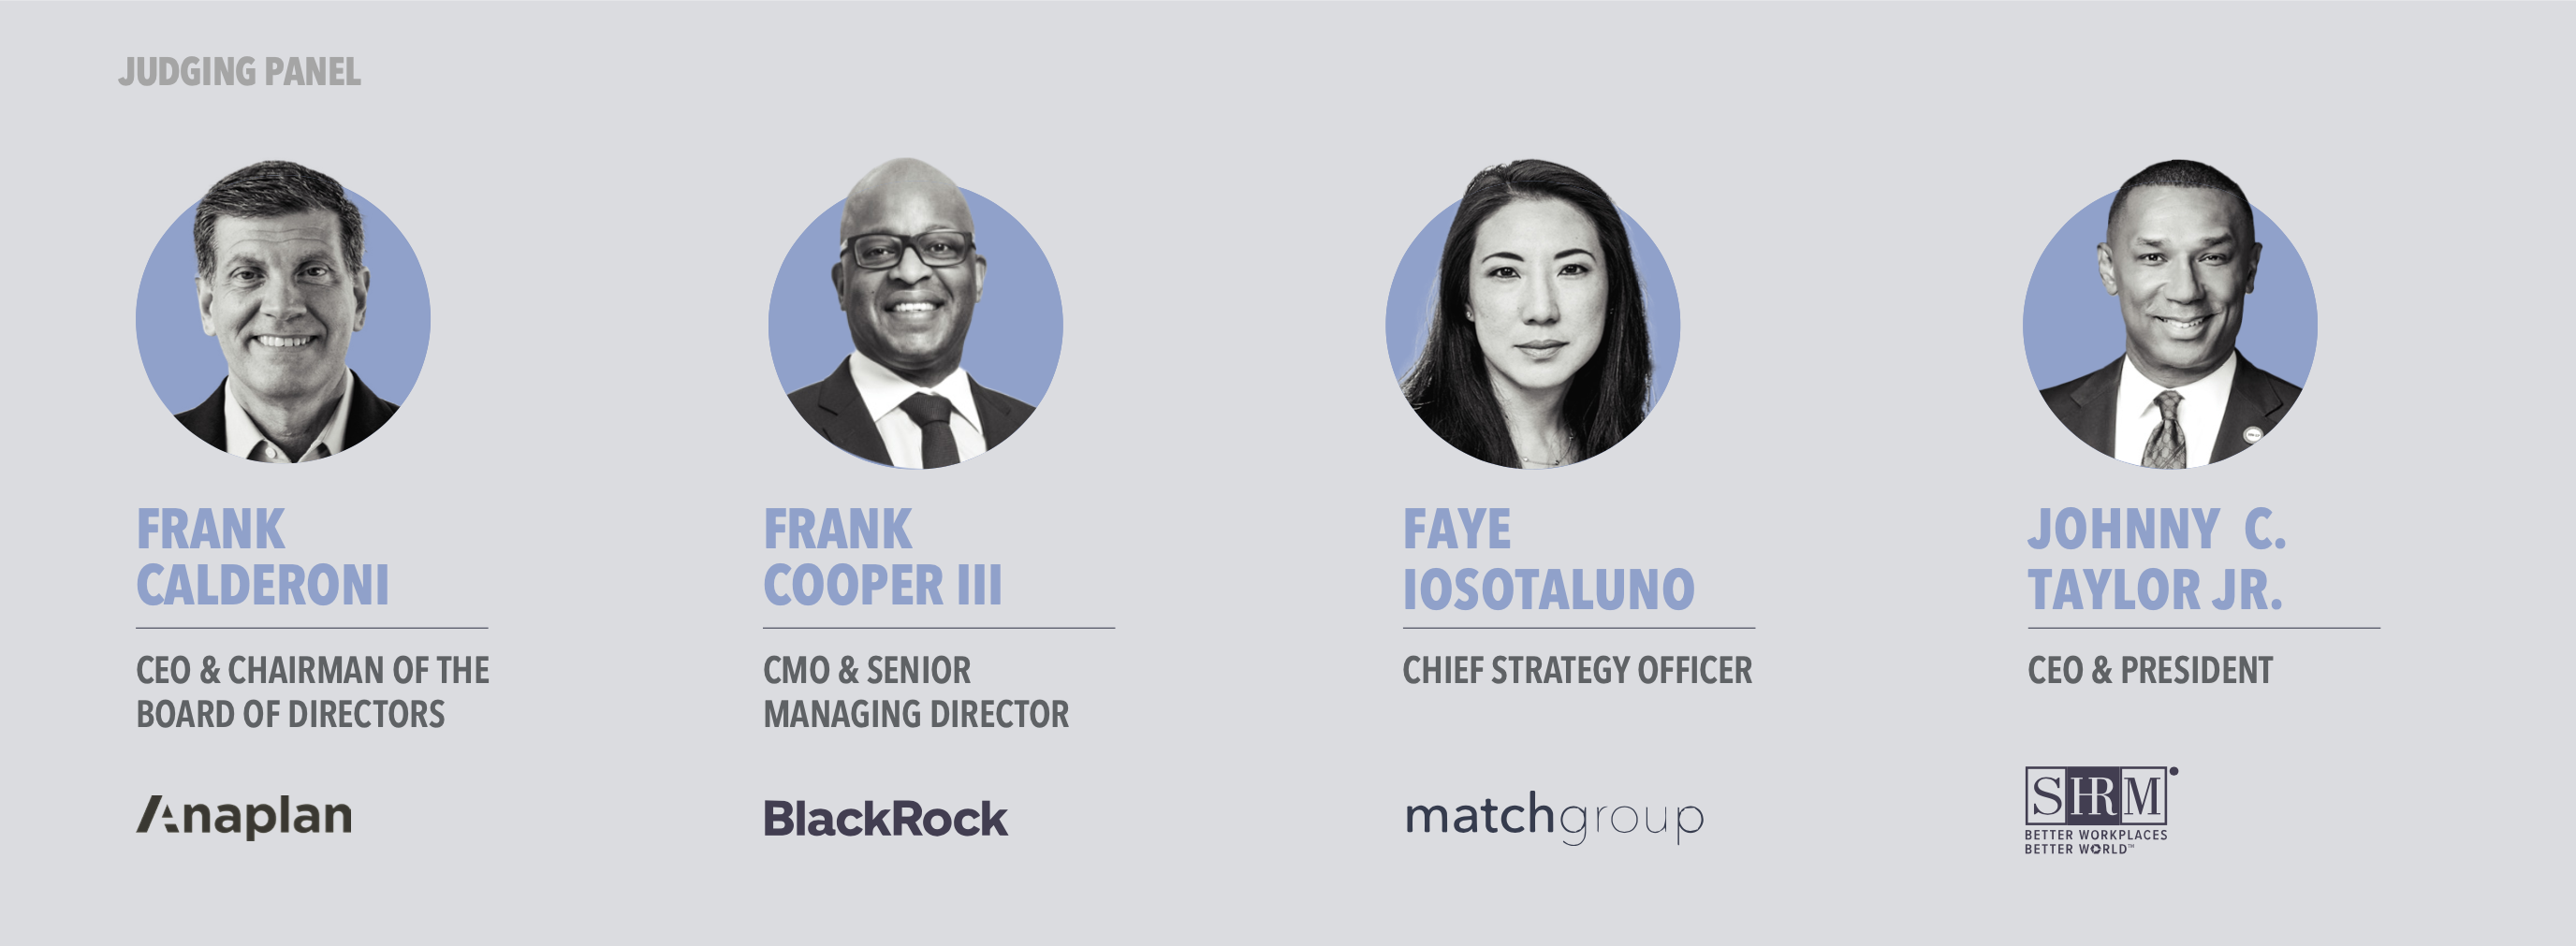 DS4A / Empowerment: Judging Panel includes Frank Calderoni, CEO & Chairman Of The Board Of Directors, Anaplan, Frank Cooper III, CMO & Senior Managing Director, Blackrock, Faye Iosotaluno, Chief Strategy Officer, Match Group, Johnny C. Taylor Jr., CEO & President, SHRM